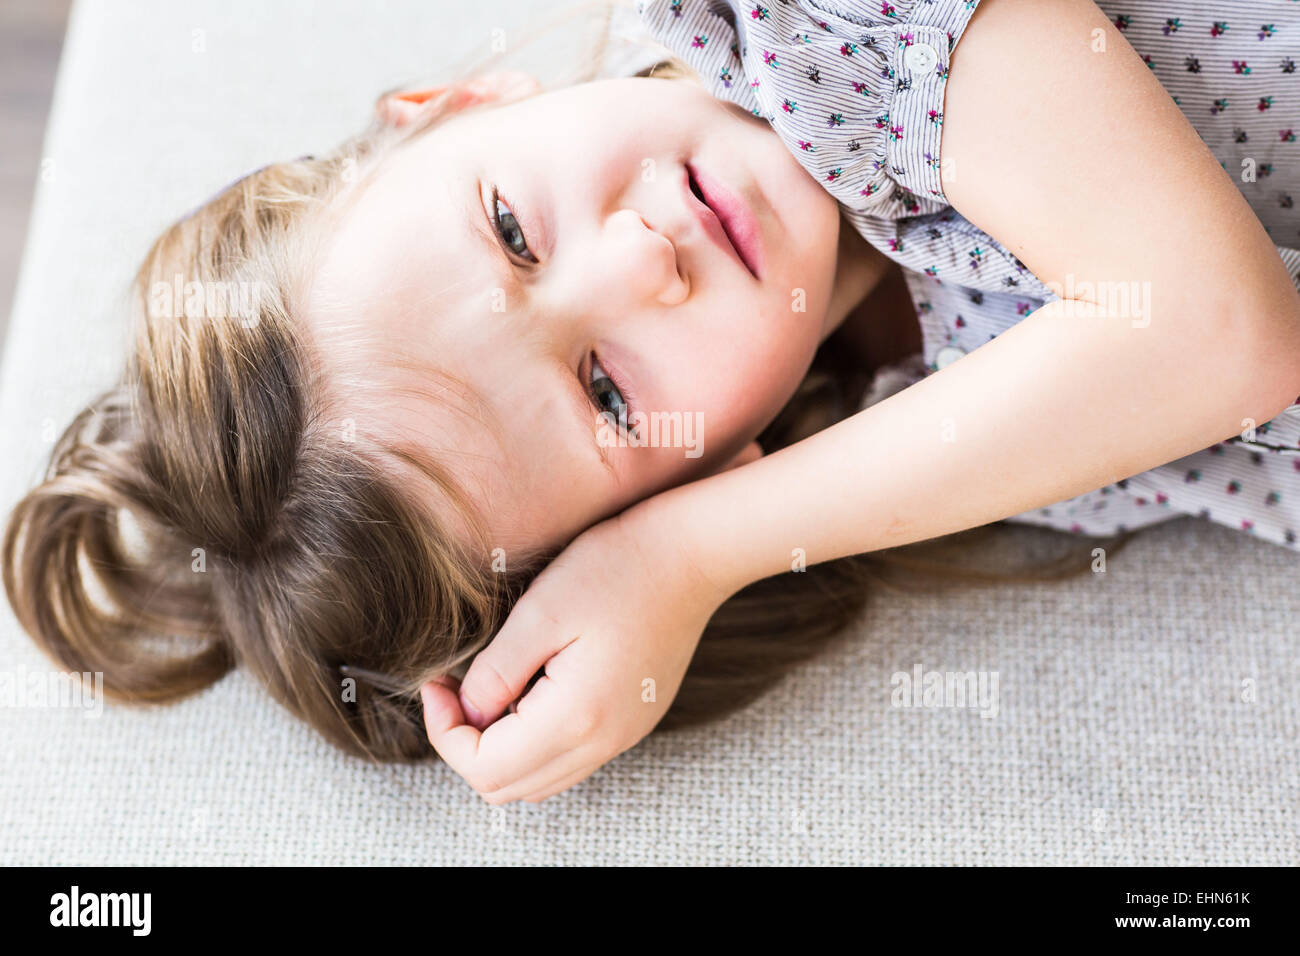 5-year-old girl looking sick and feverish. - Stock Image